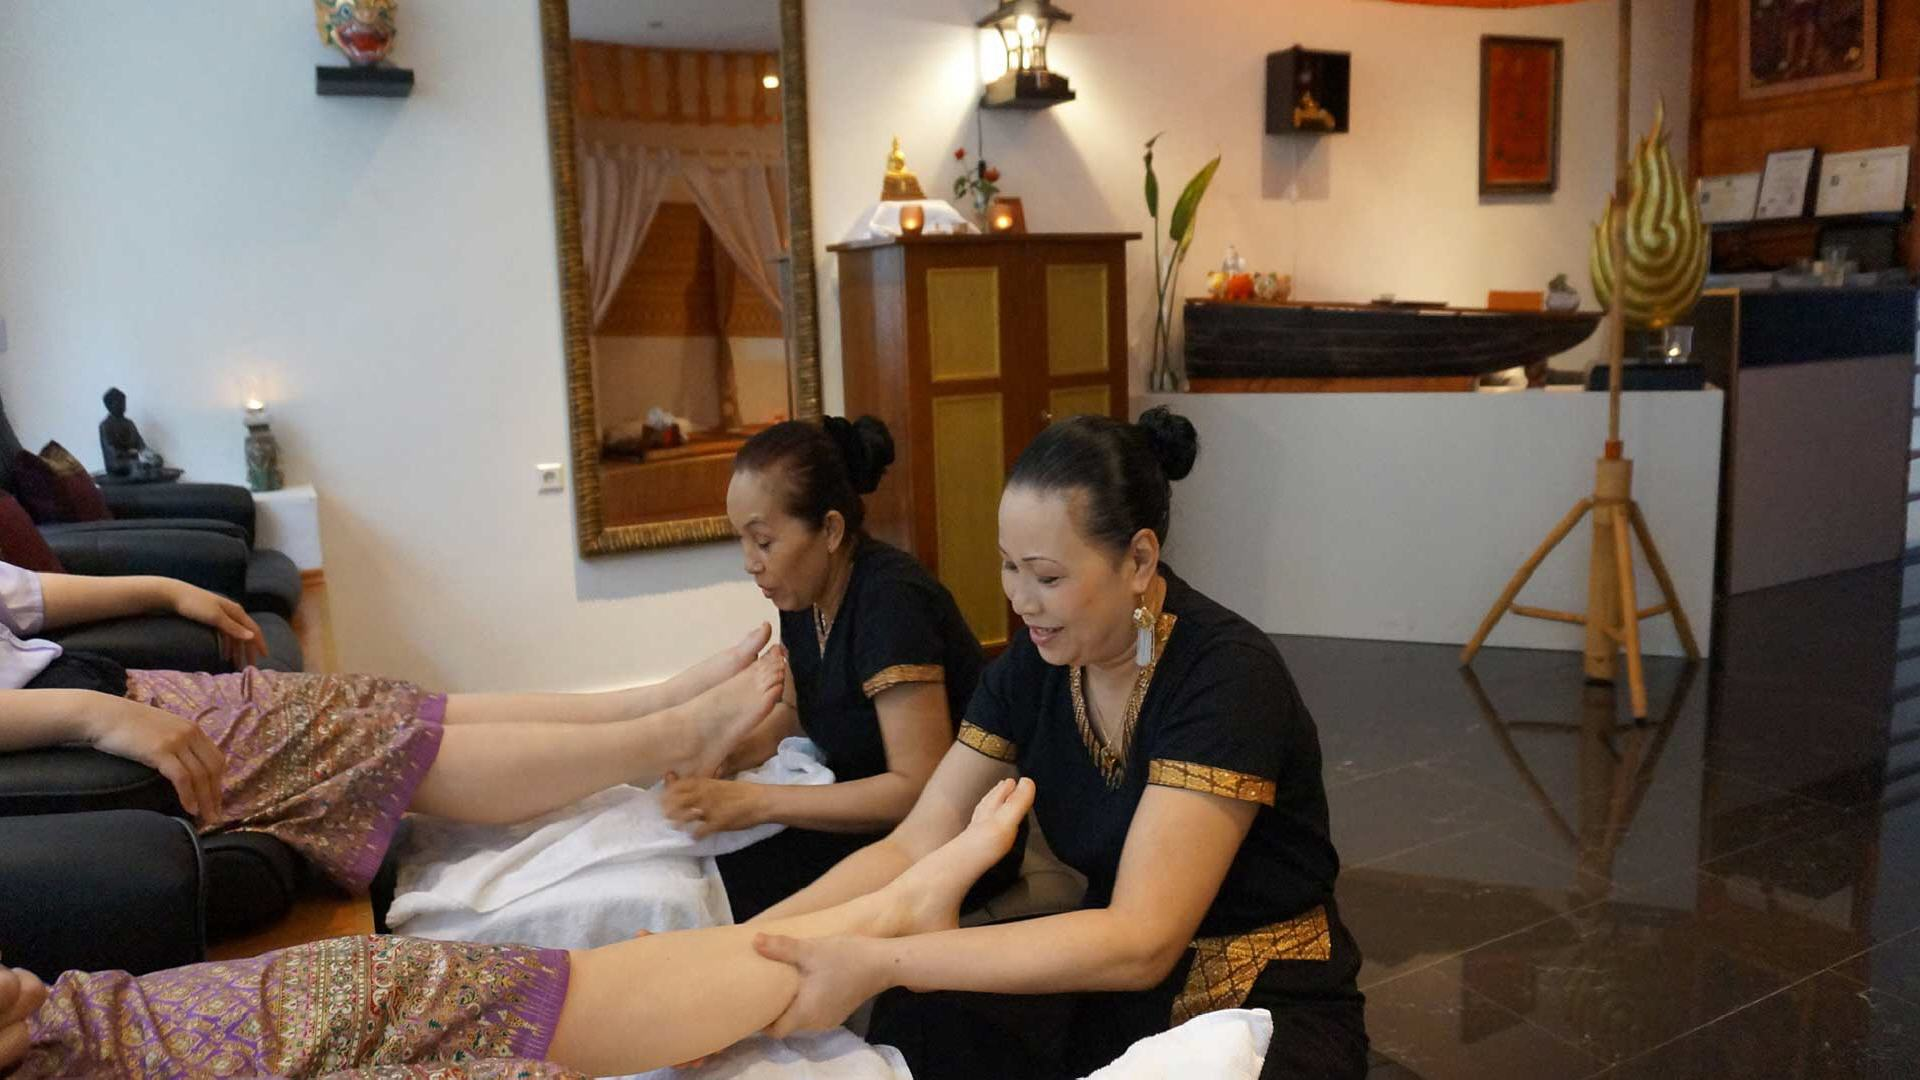 Willkommen bei best one Praxis für traditionelle Thai-Massage Stuttgart, Thai Wellness Spa und Gesundheit Massage Stuttgart, Ihre kleine Auszeit vom Alltag in Suttutgart